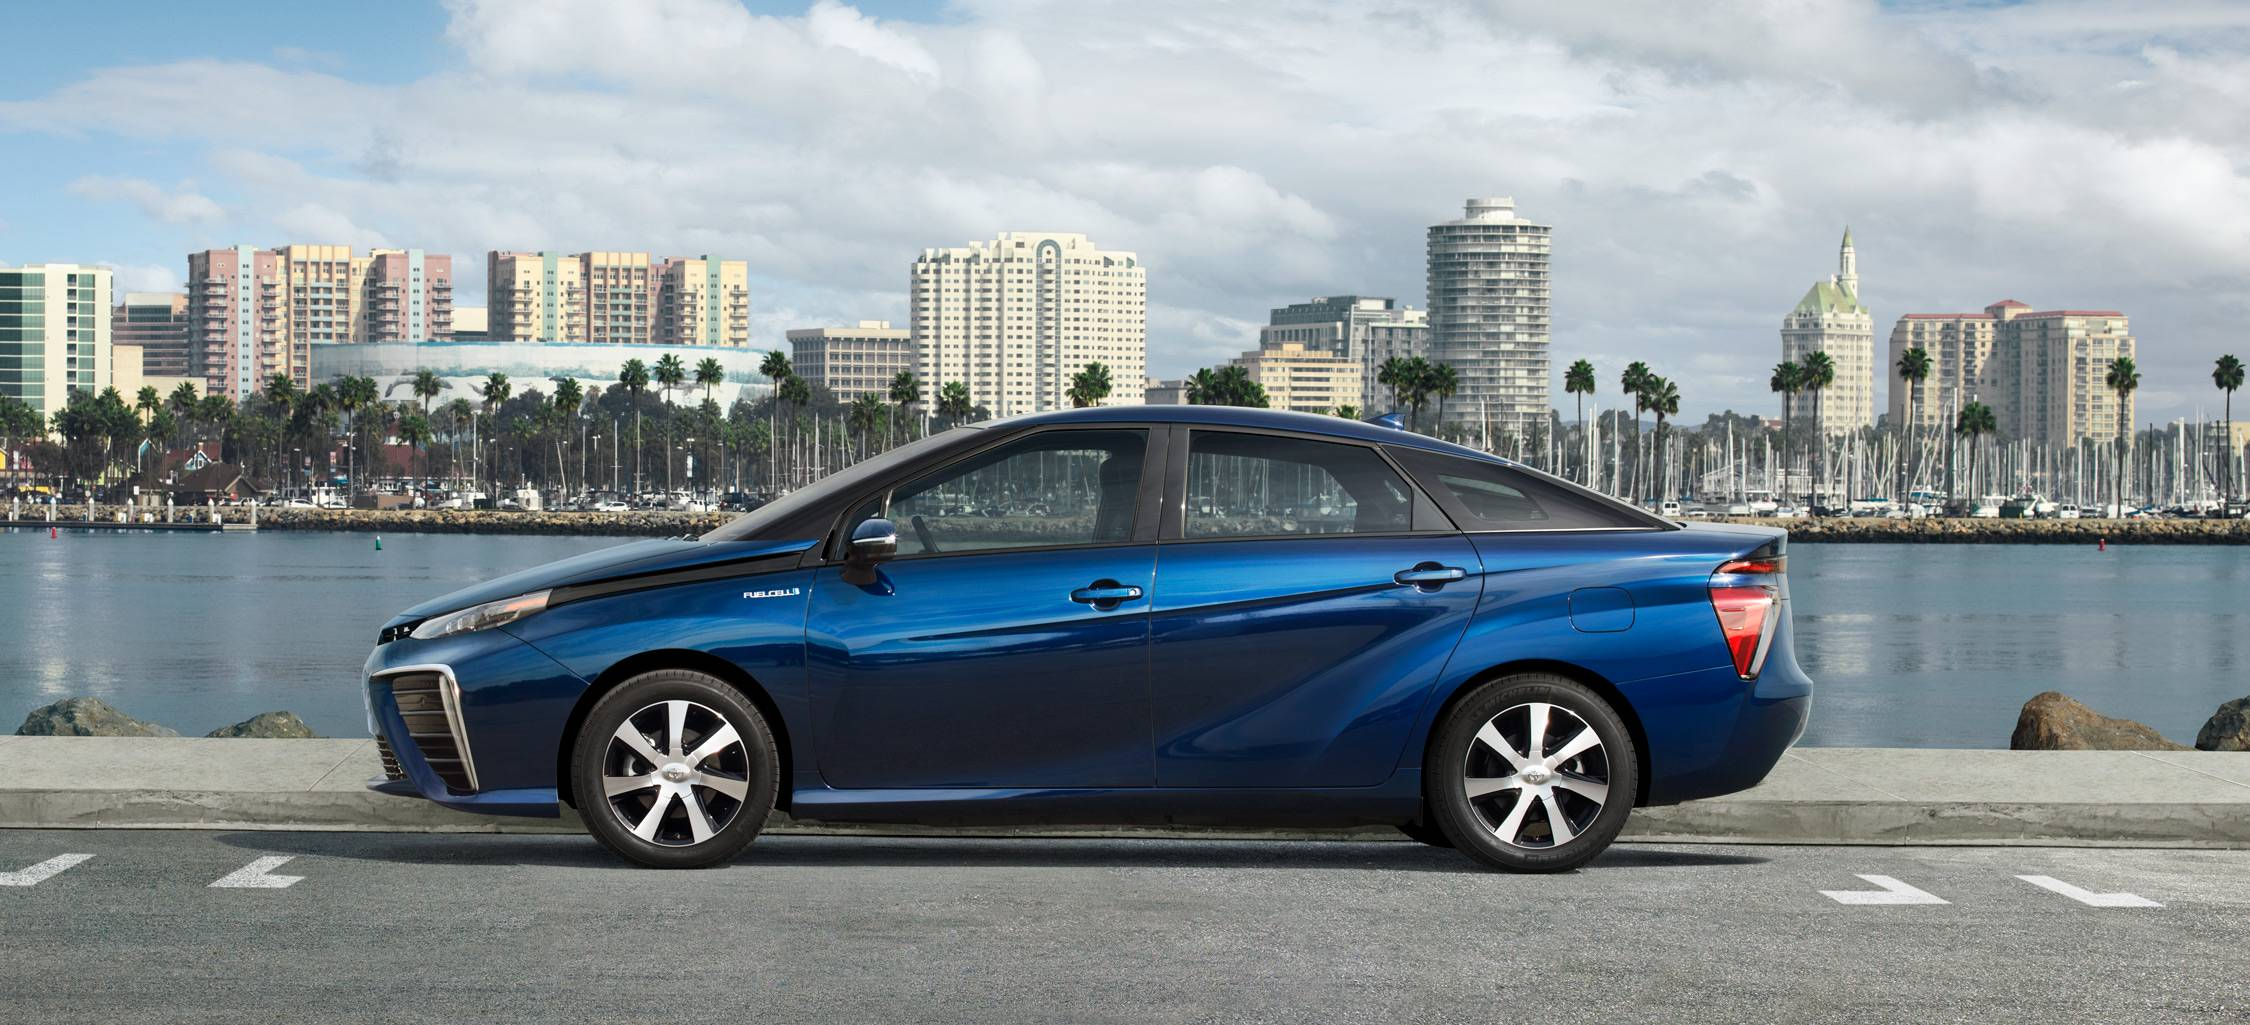 Toyota mirai clipart vector freeuse library Mirai | Explore | Toyota Hawaii vector freeuse library